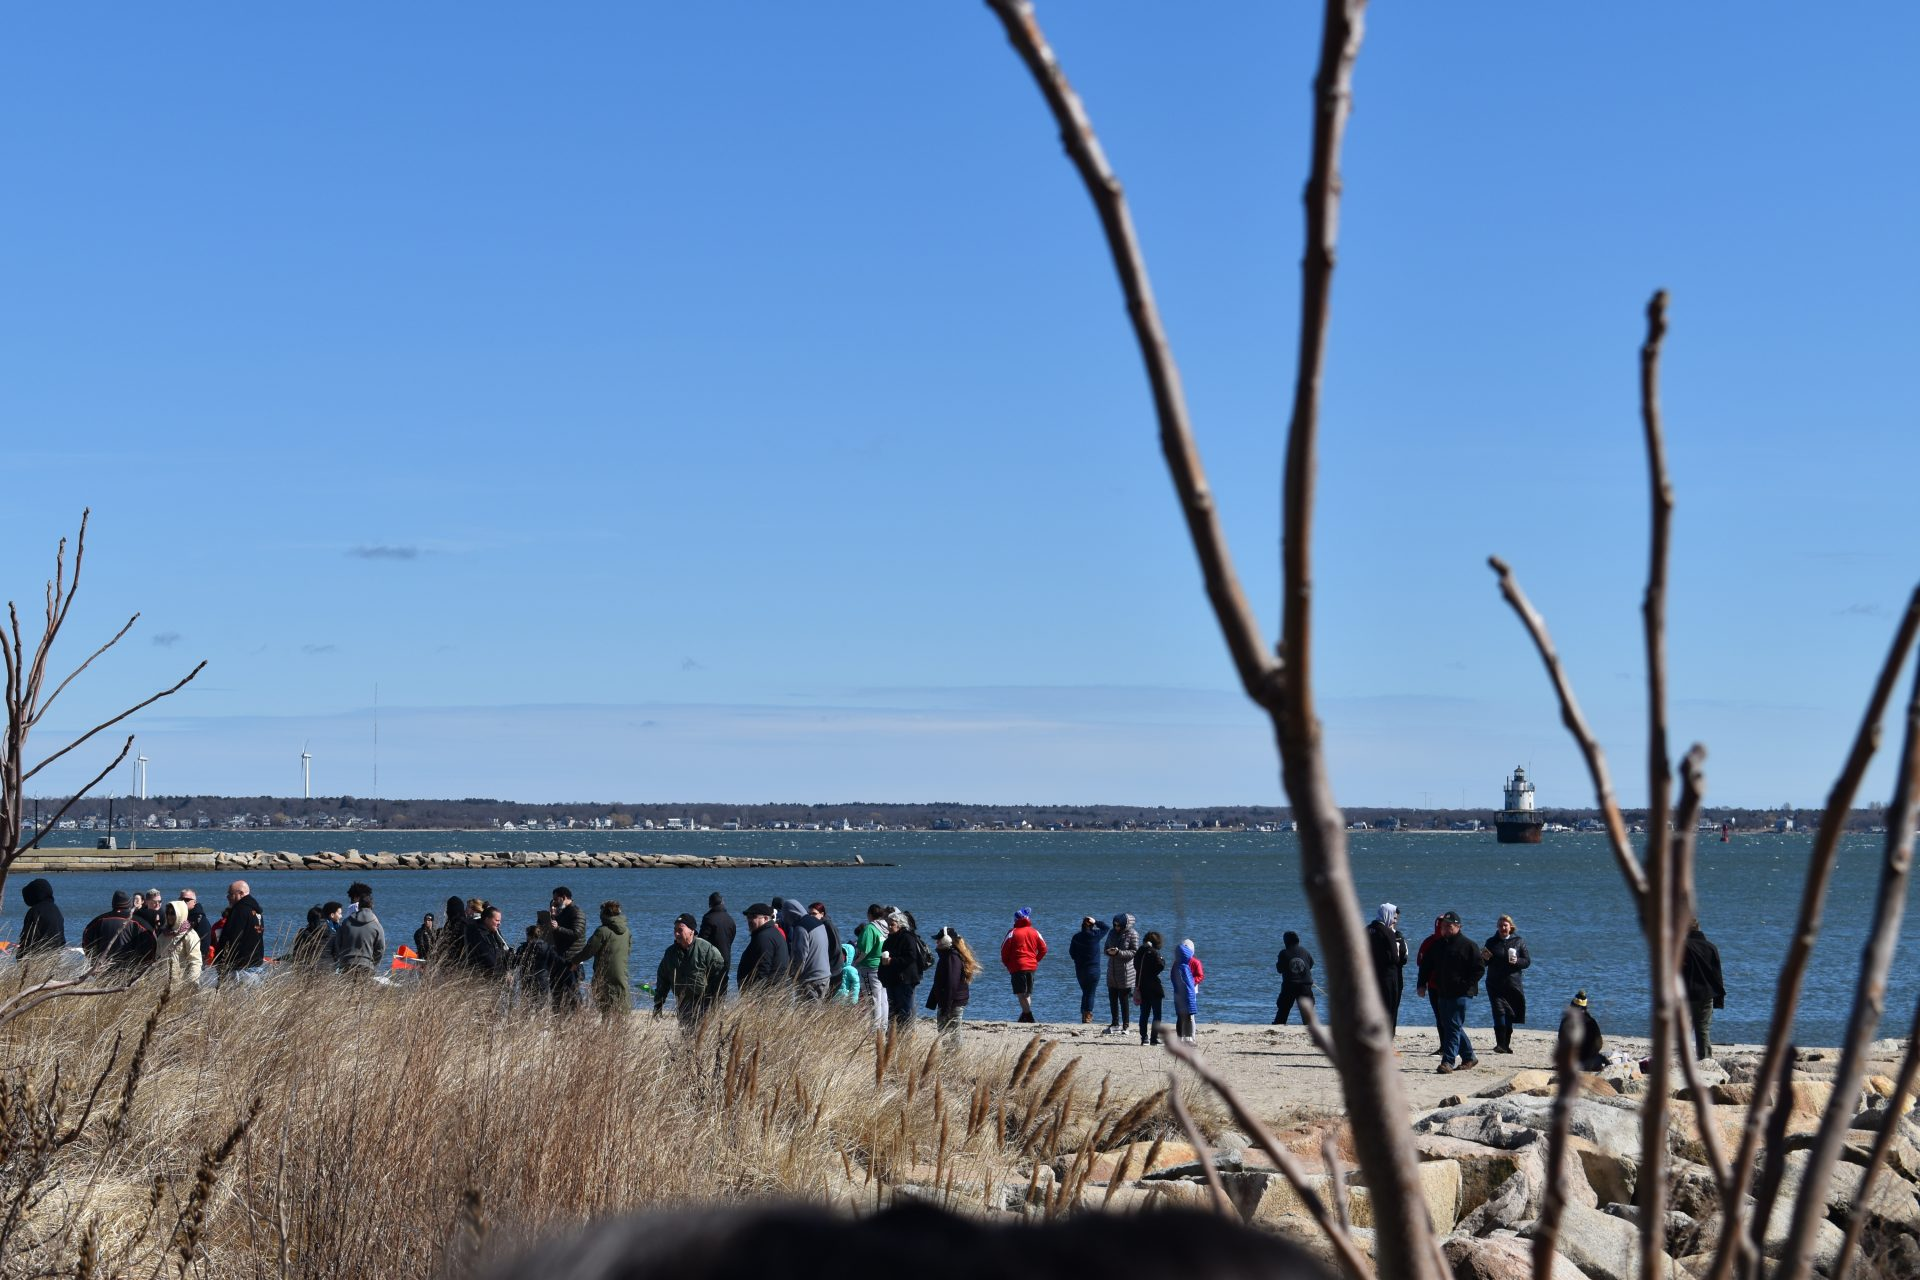 Far View Of Participants At East Beach